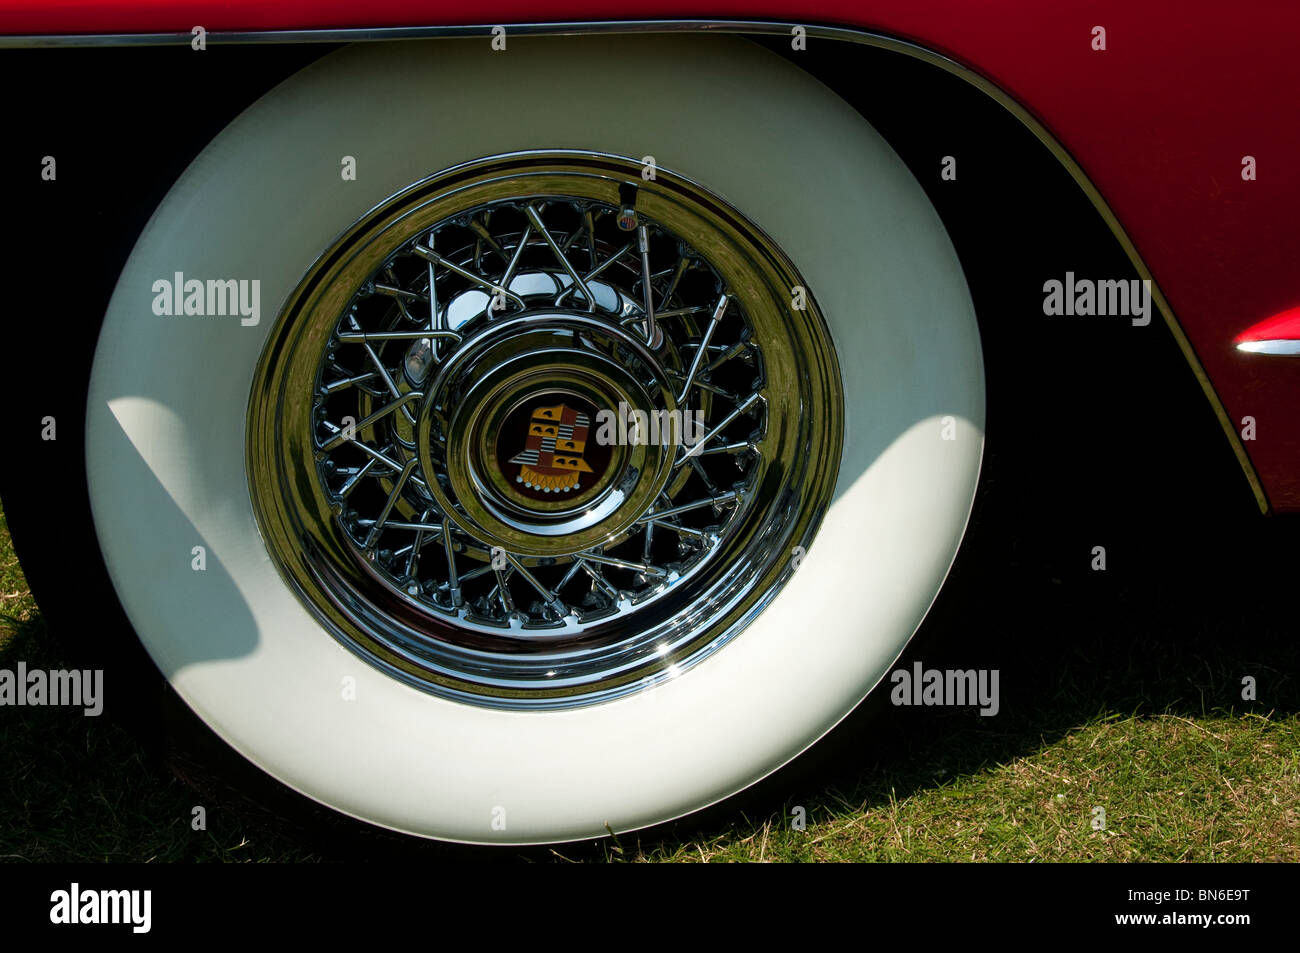 Wheel detail of a classic red Cadillac - Stock Image